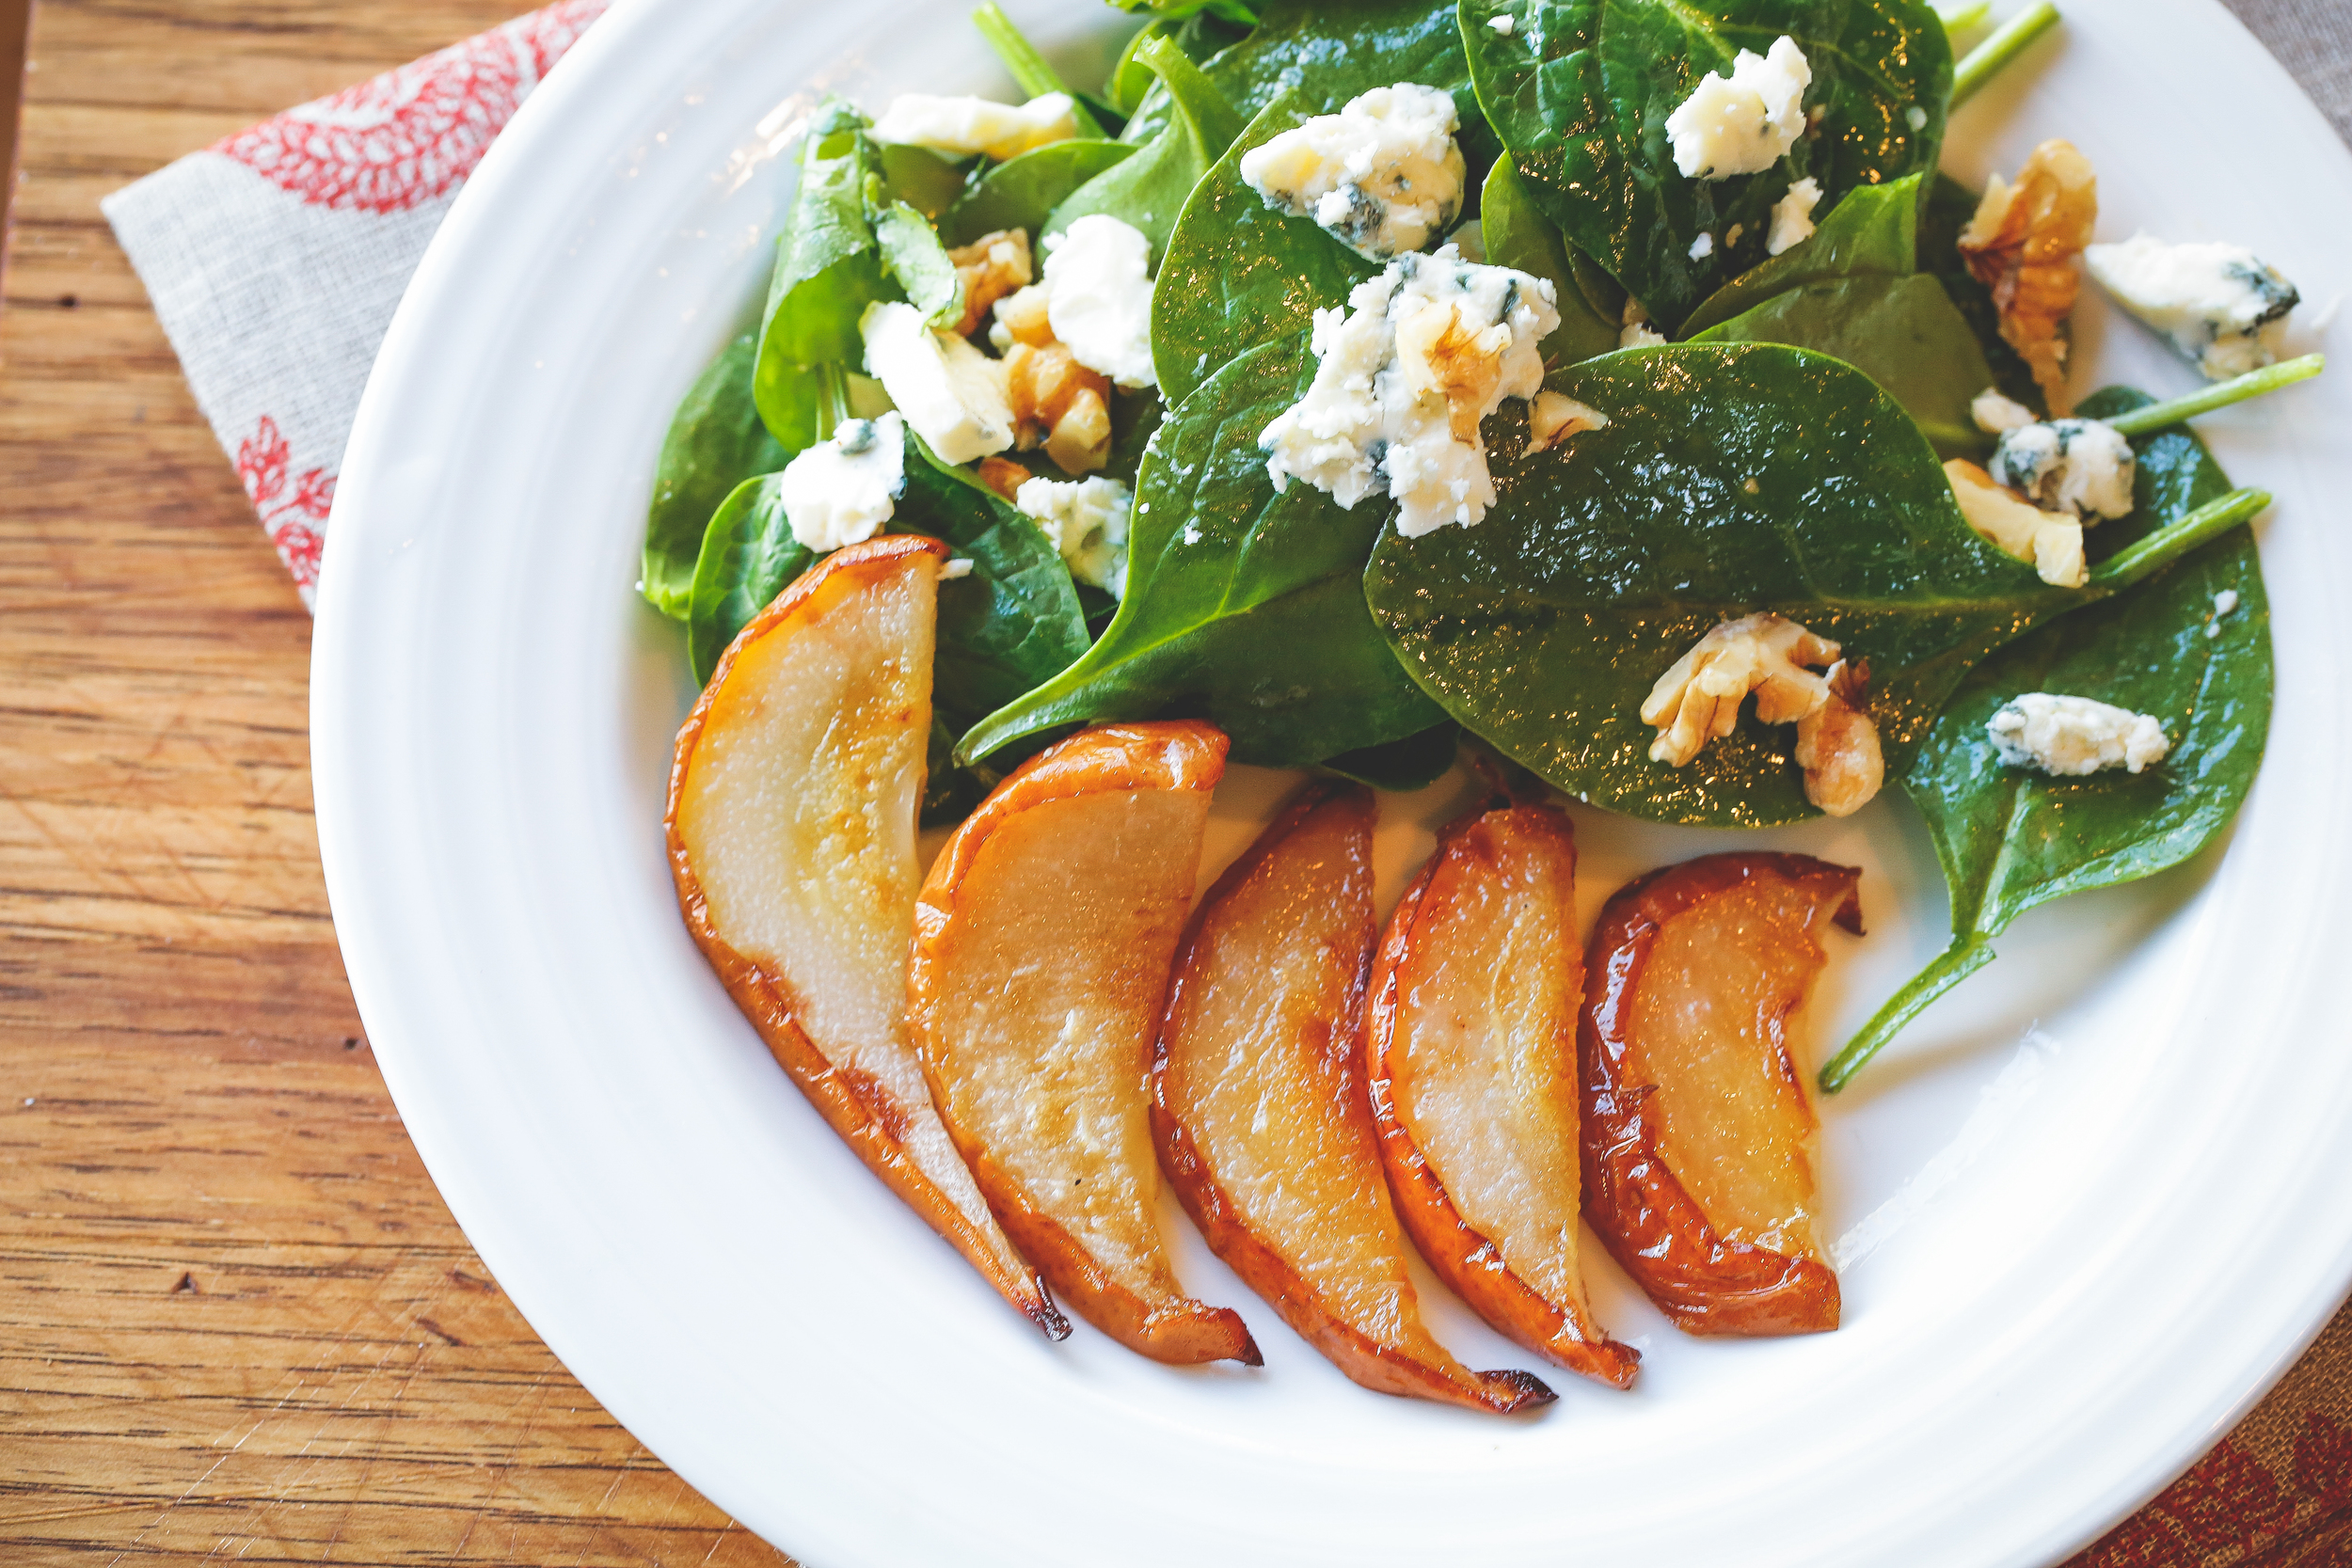 Spinach and Roasted Pear Salad with Walnut Vinaigrette